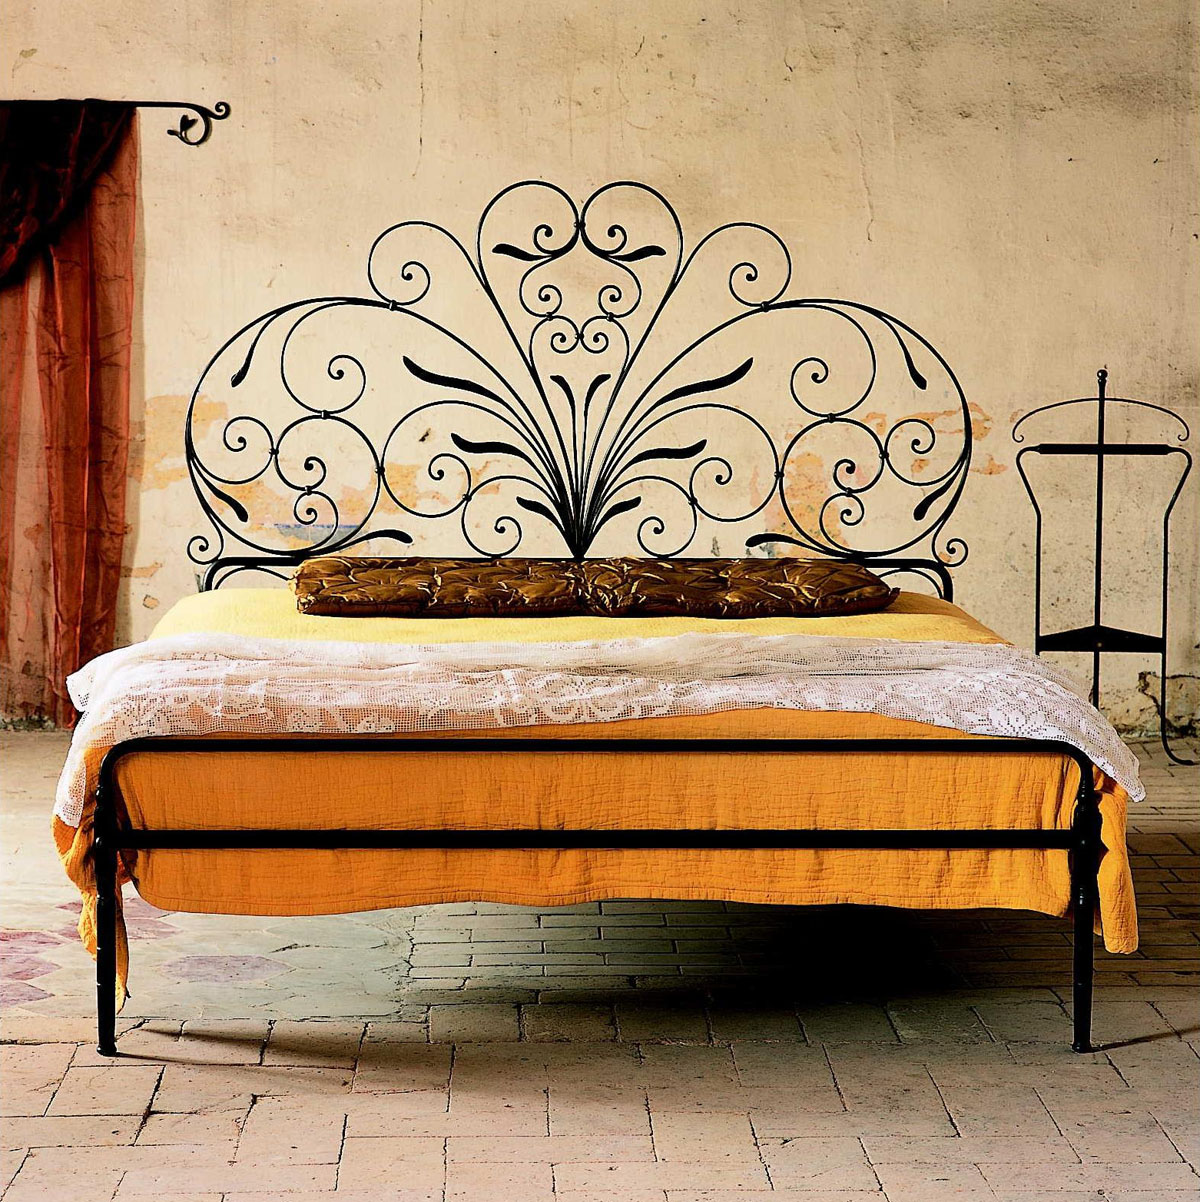 Tuscan beds design ideas idesignarch interior design for Bed design ideas